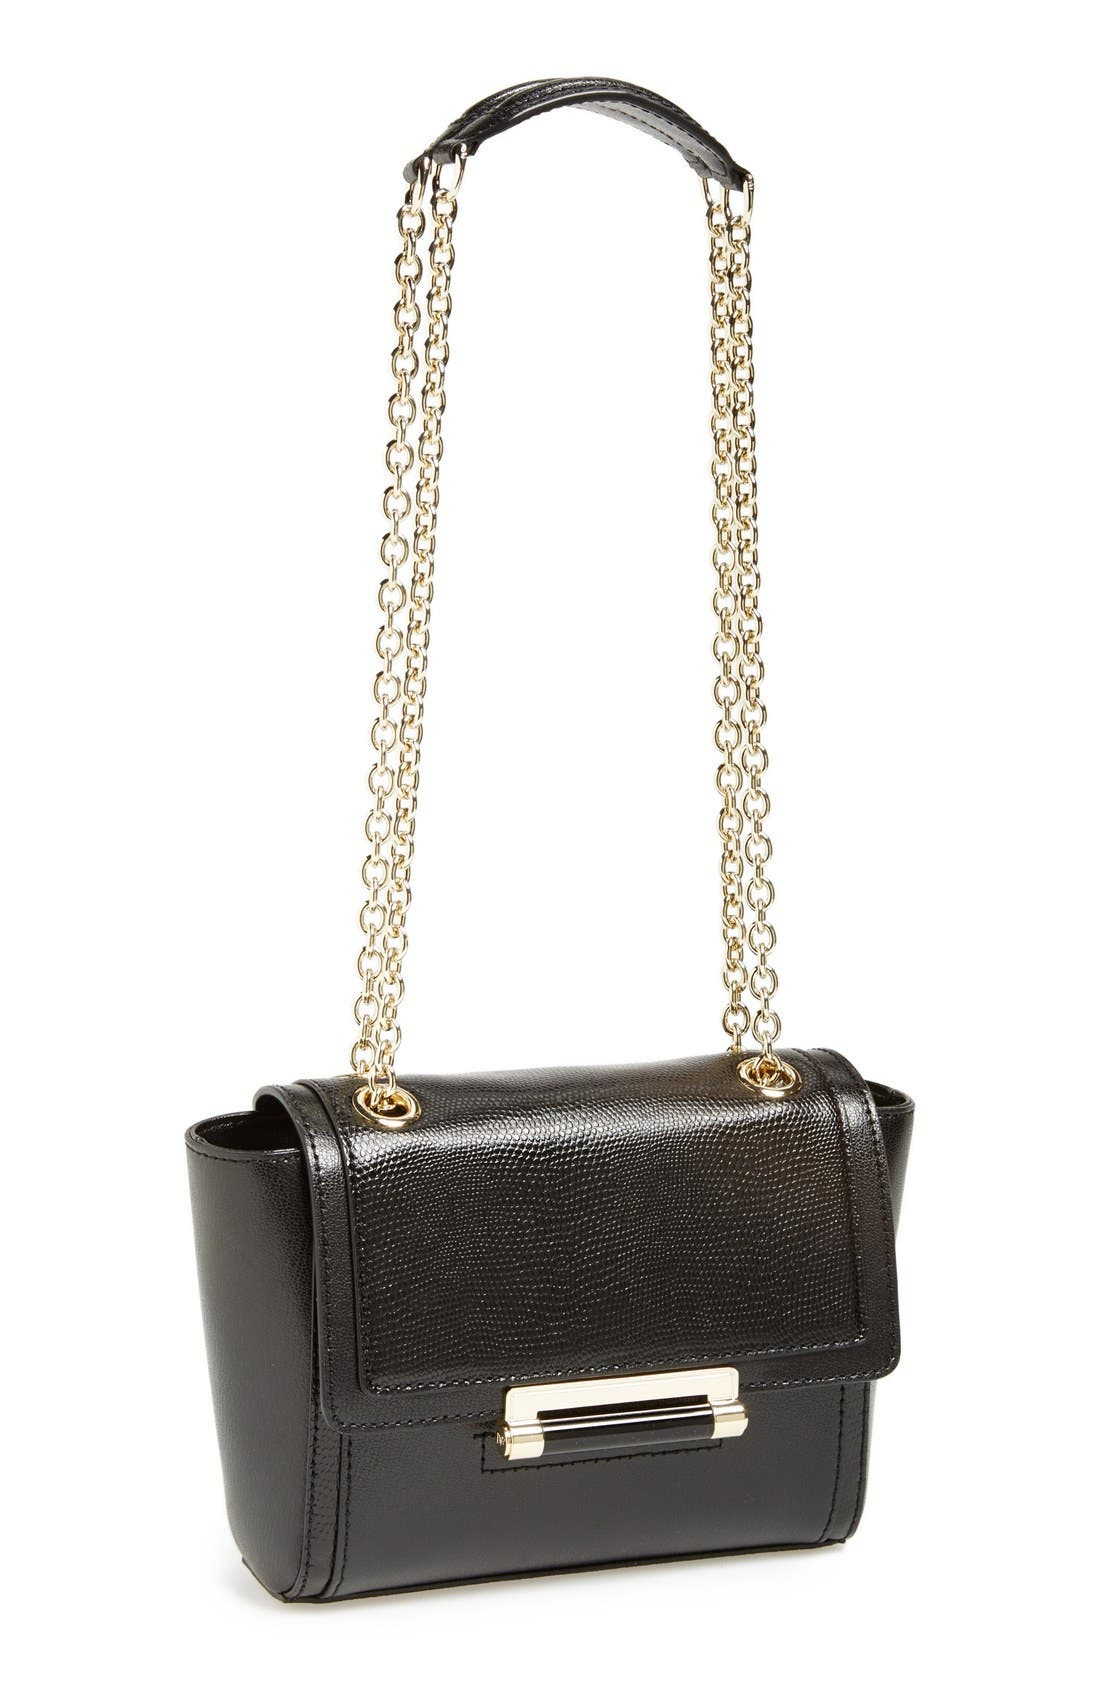 Alternate Image 1 Selected - Diane von Furstenberg 'Mini 440' Leather Crossbody Bag